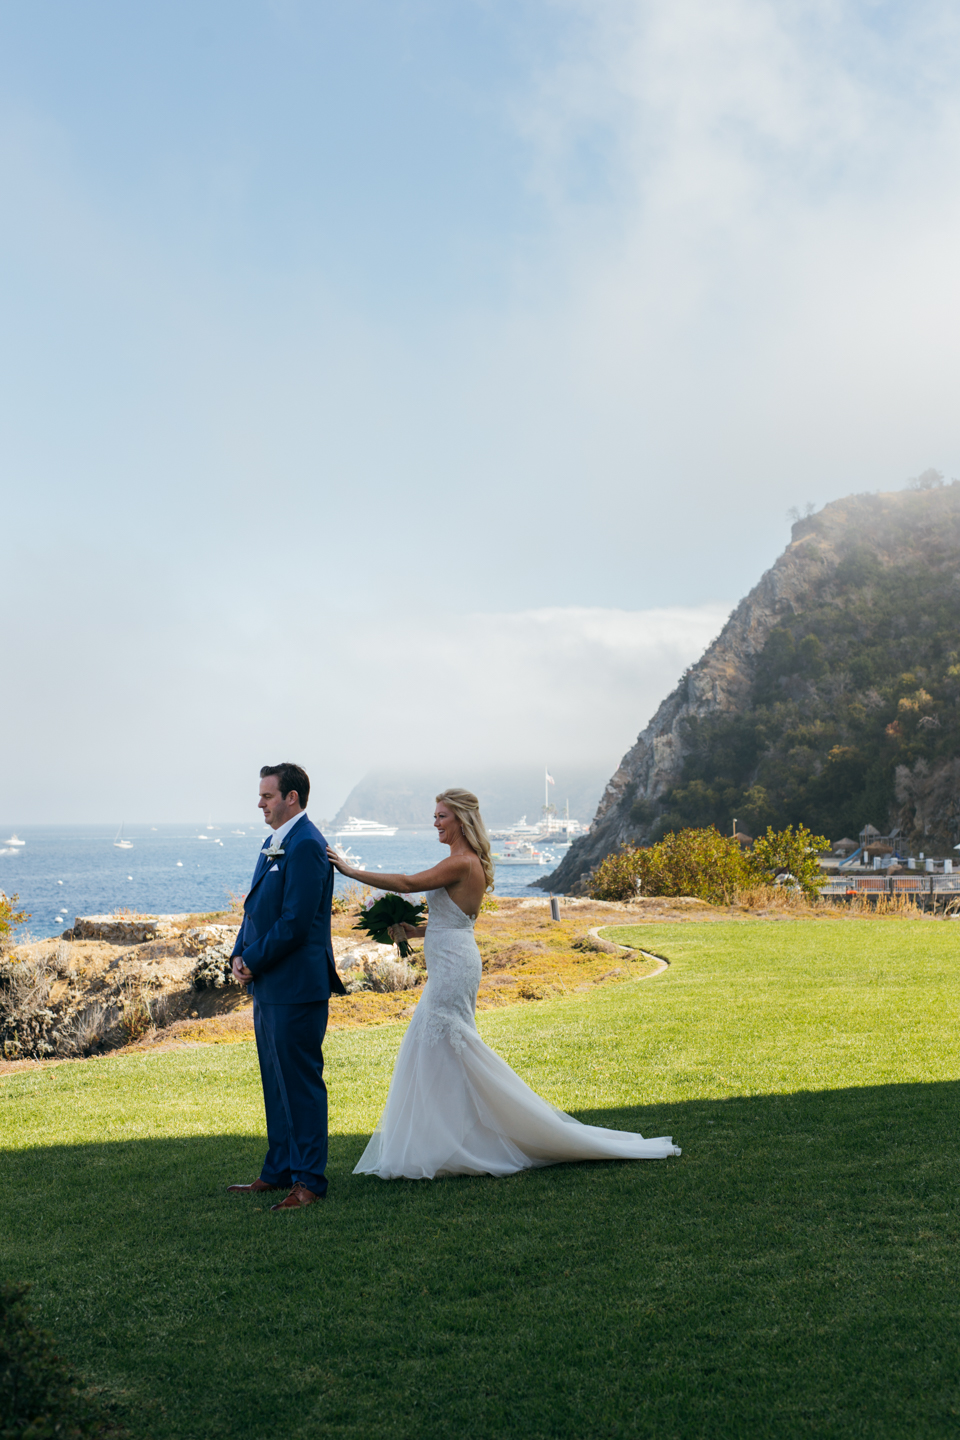 Wedding photography, Southern California wedding photography, Catalina wedding photos